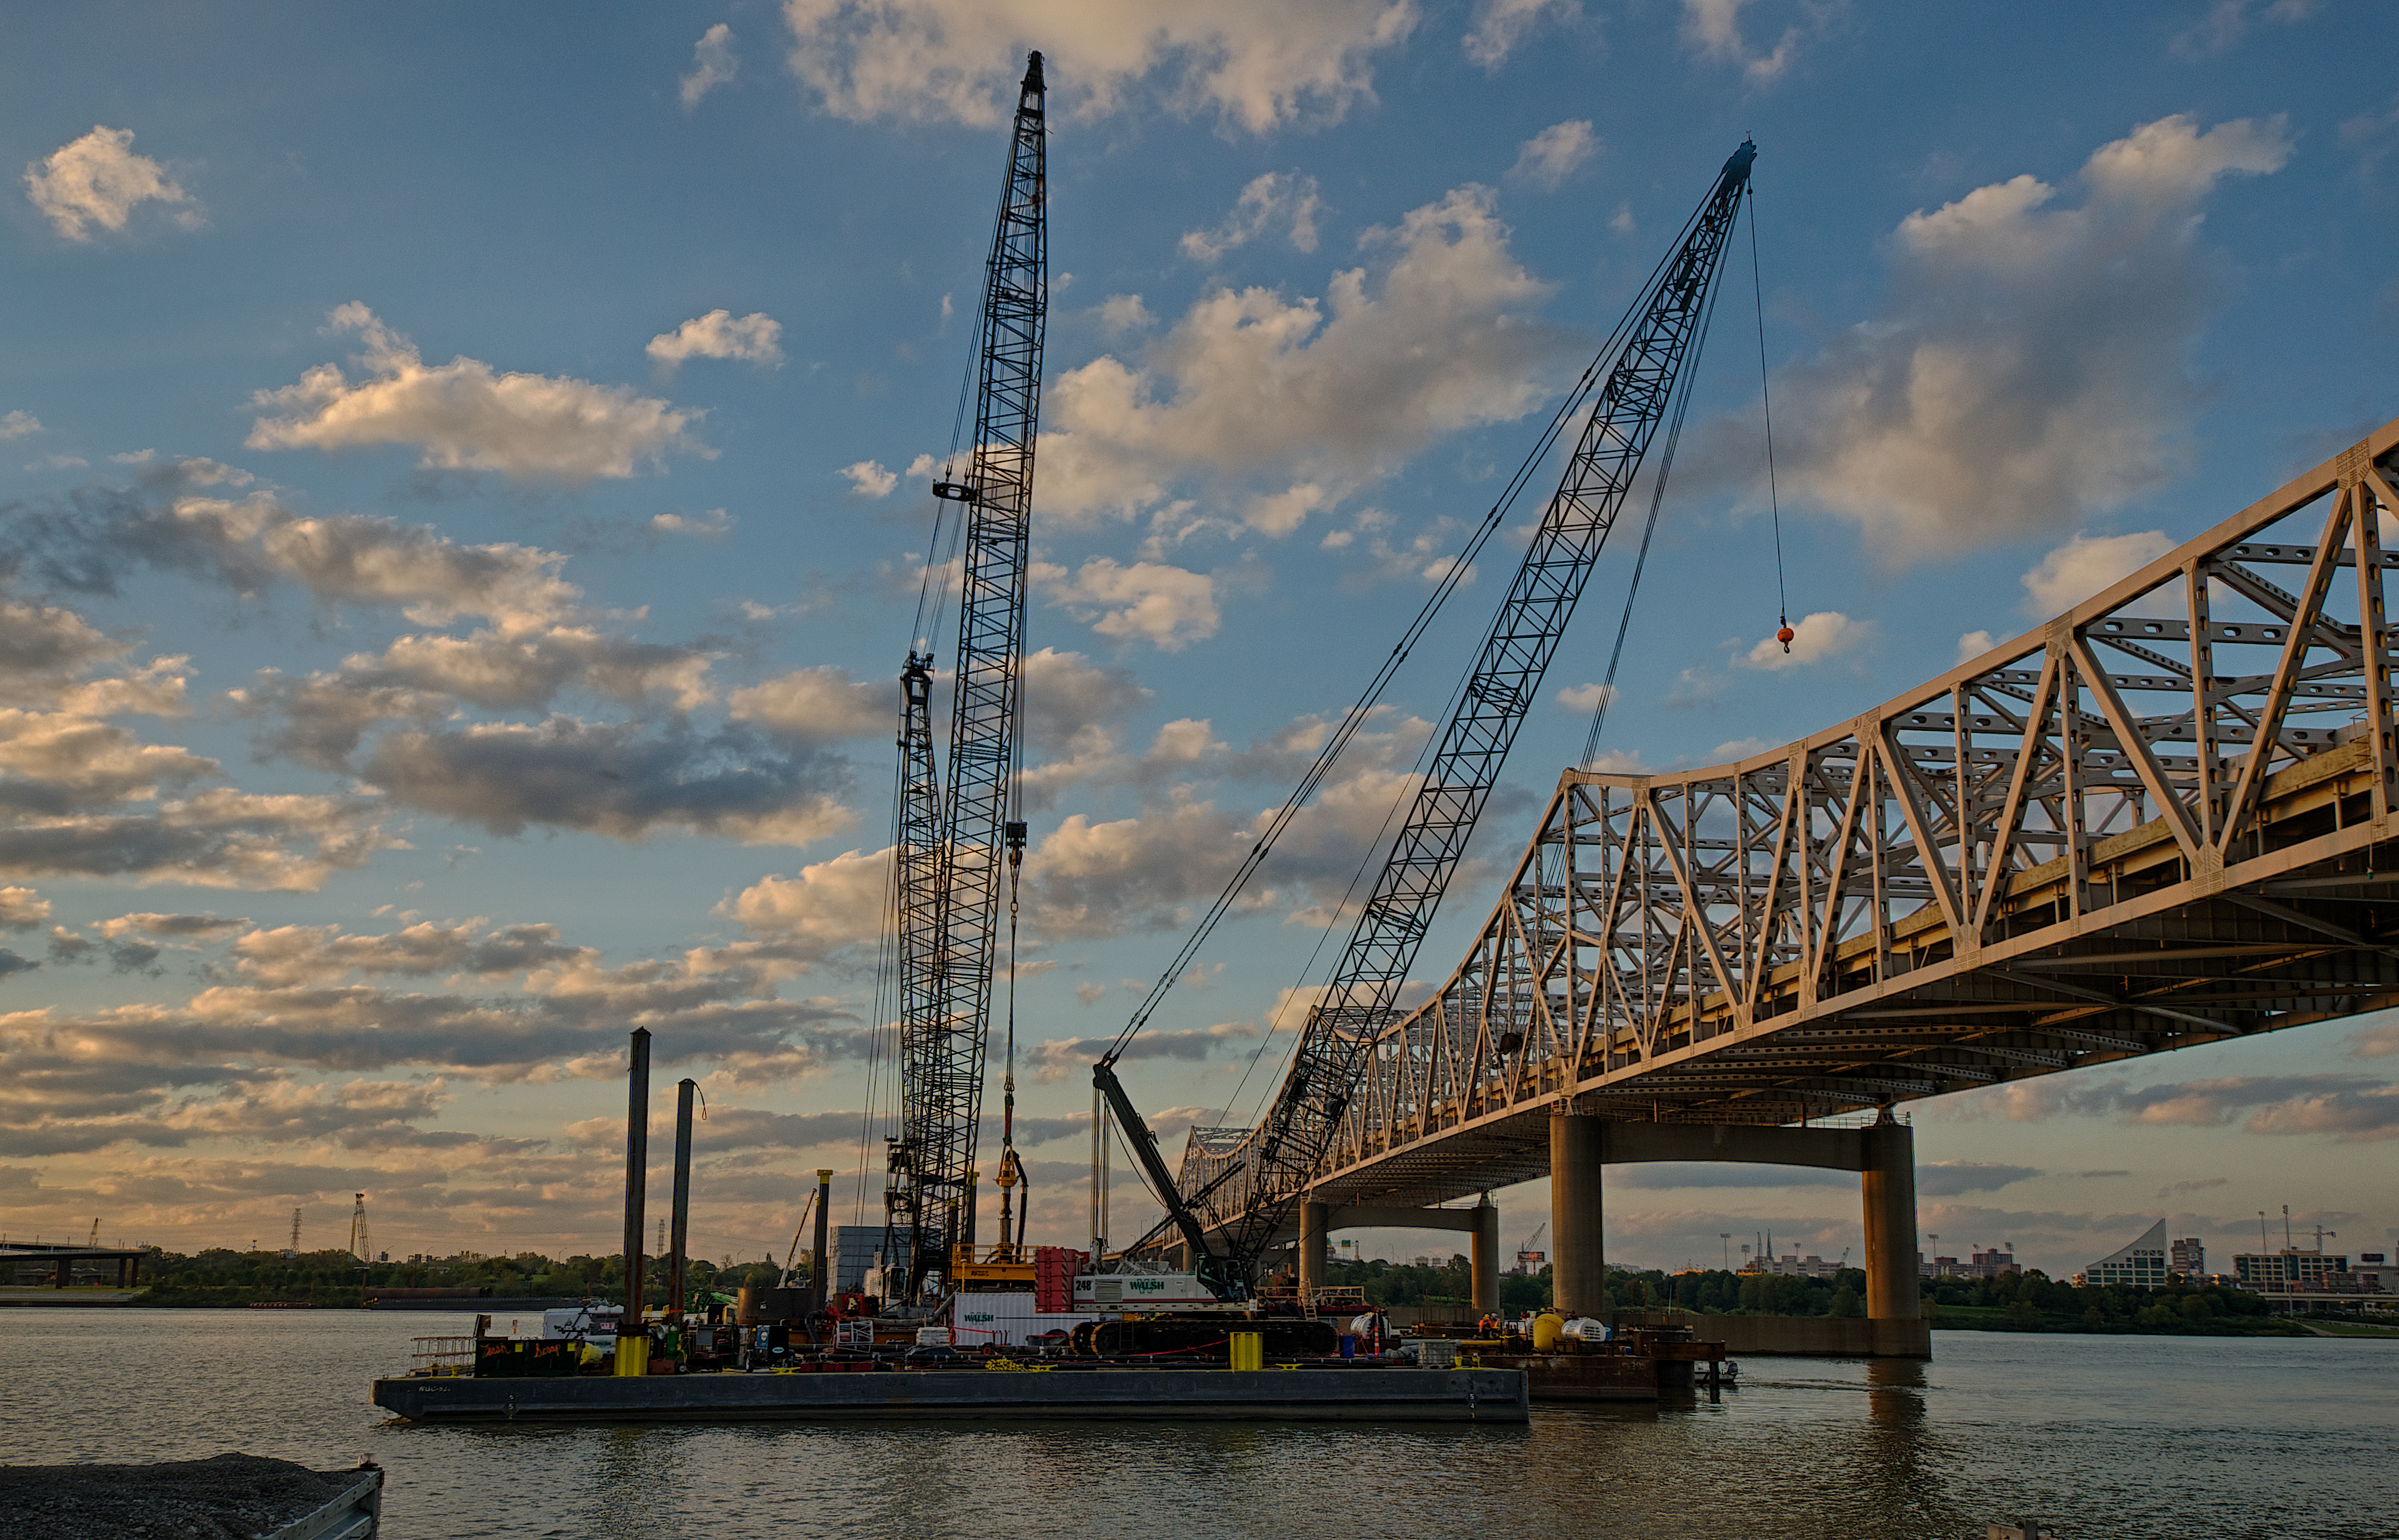 Walsh Construction Cranes on the Ohio River Bridges Project.